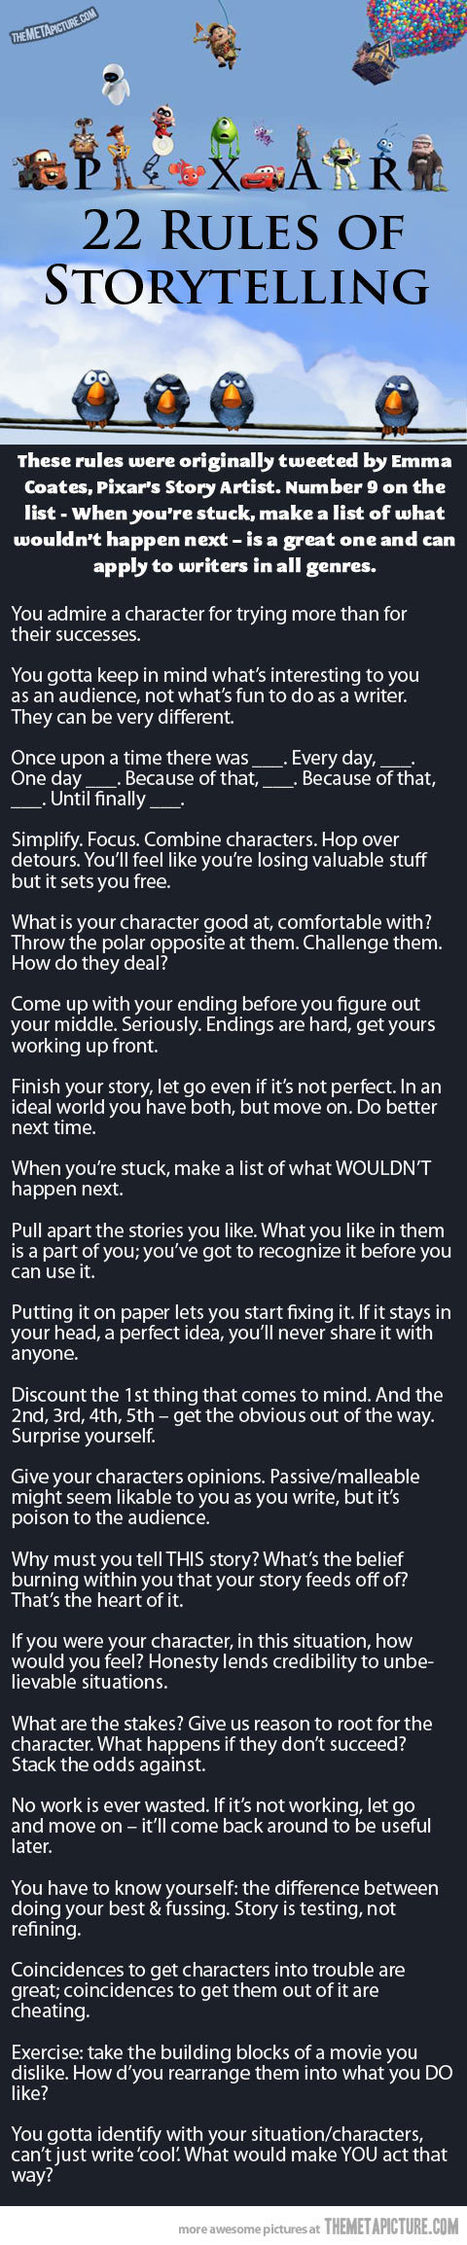 Pixar's 22 Rules Of Storytelling | The Meta Picture | Scriveners' Trappings | Scoop.it